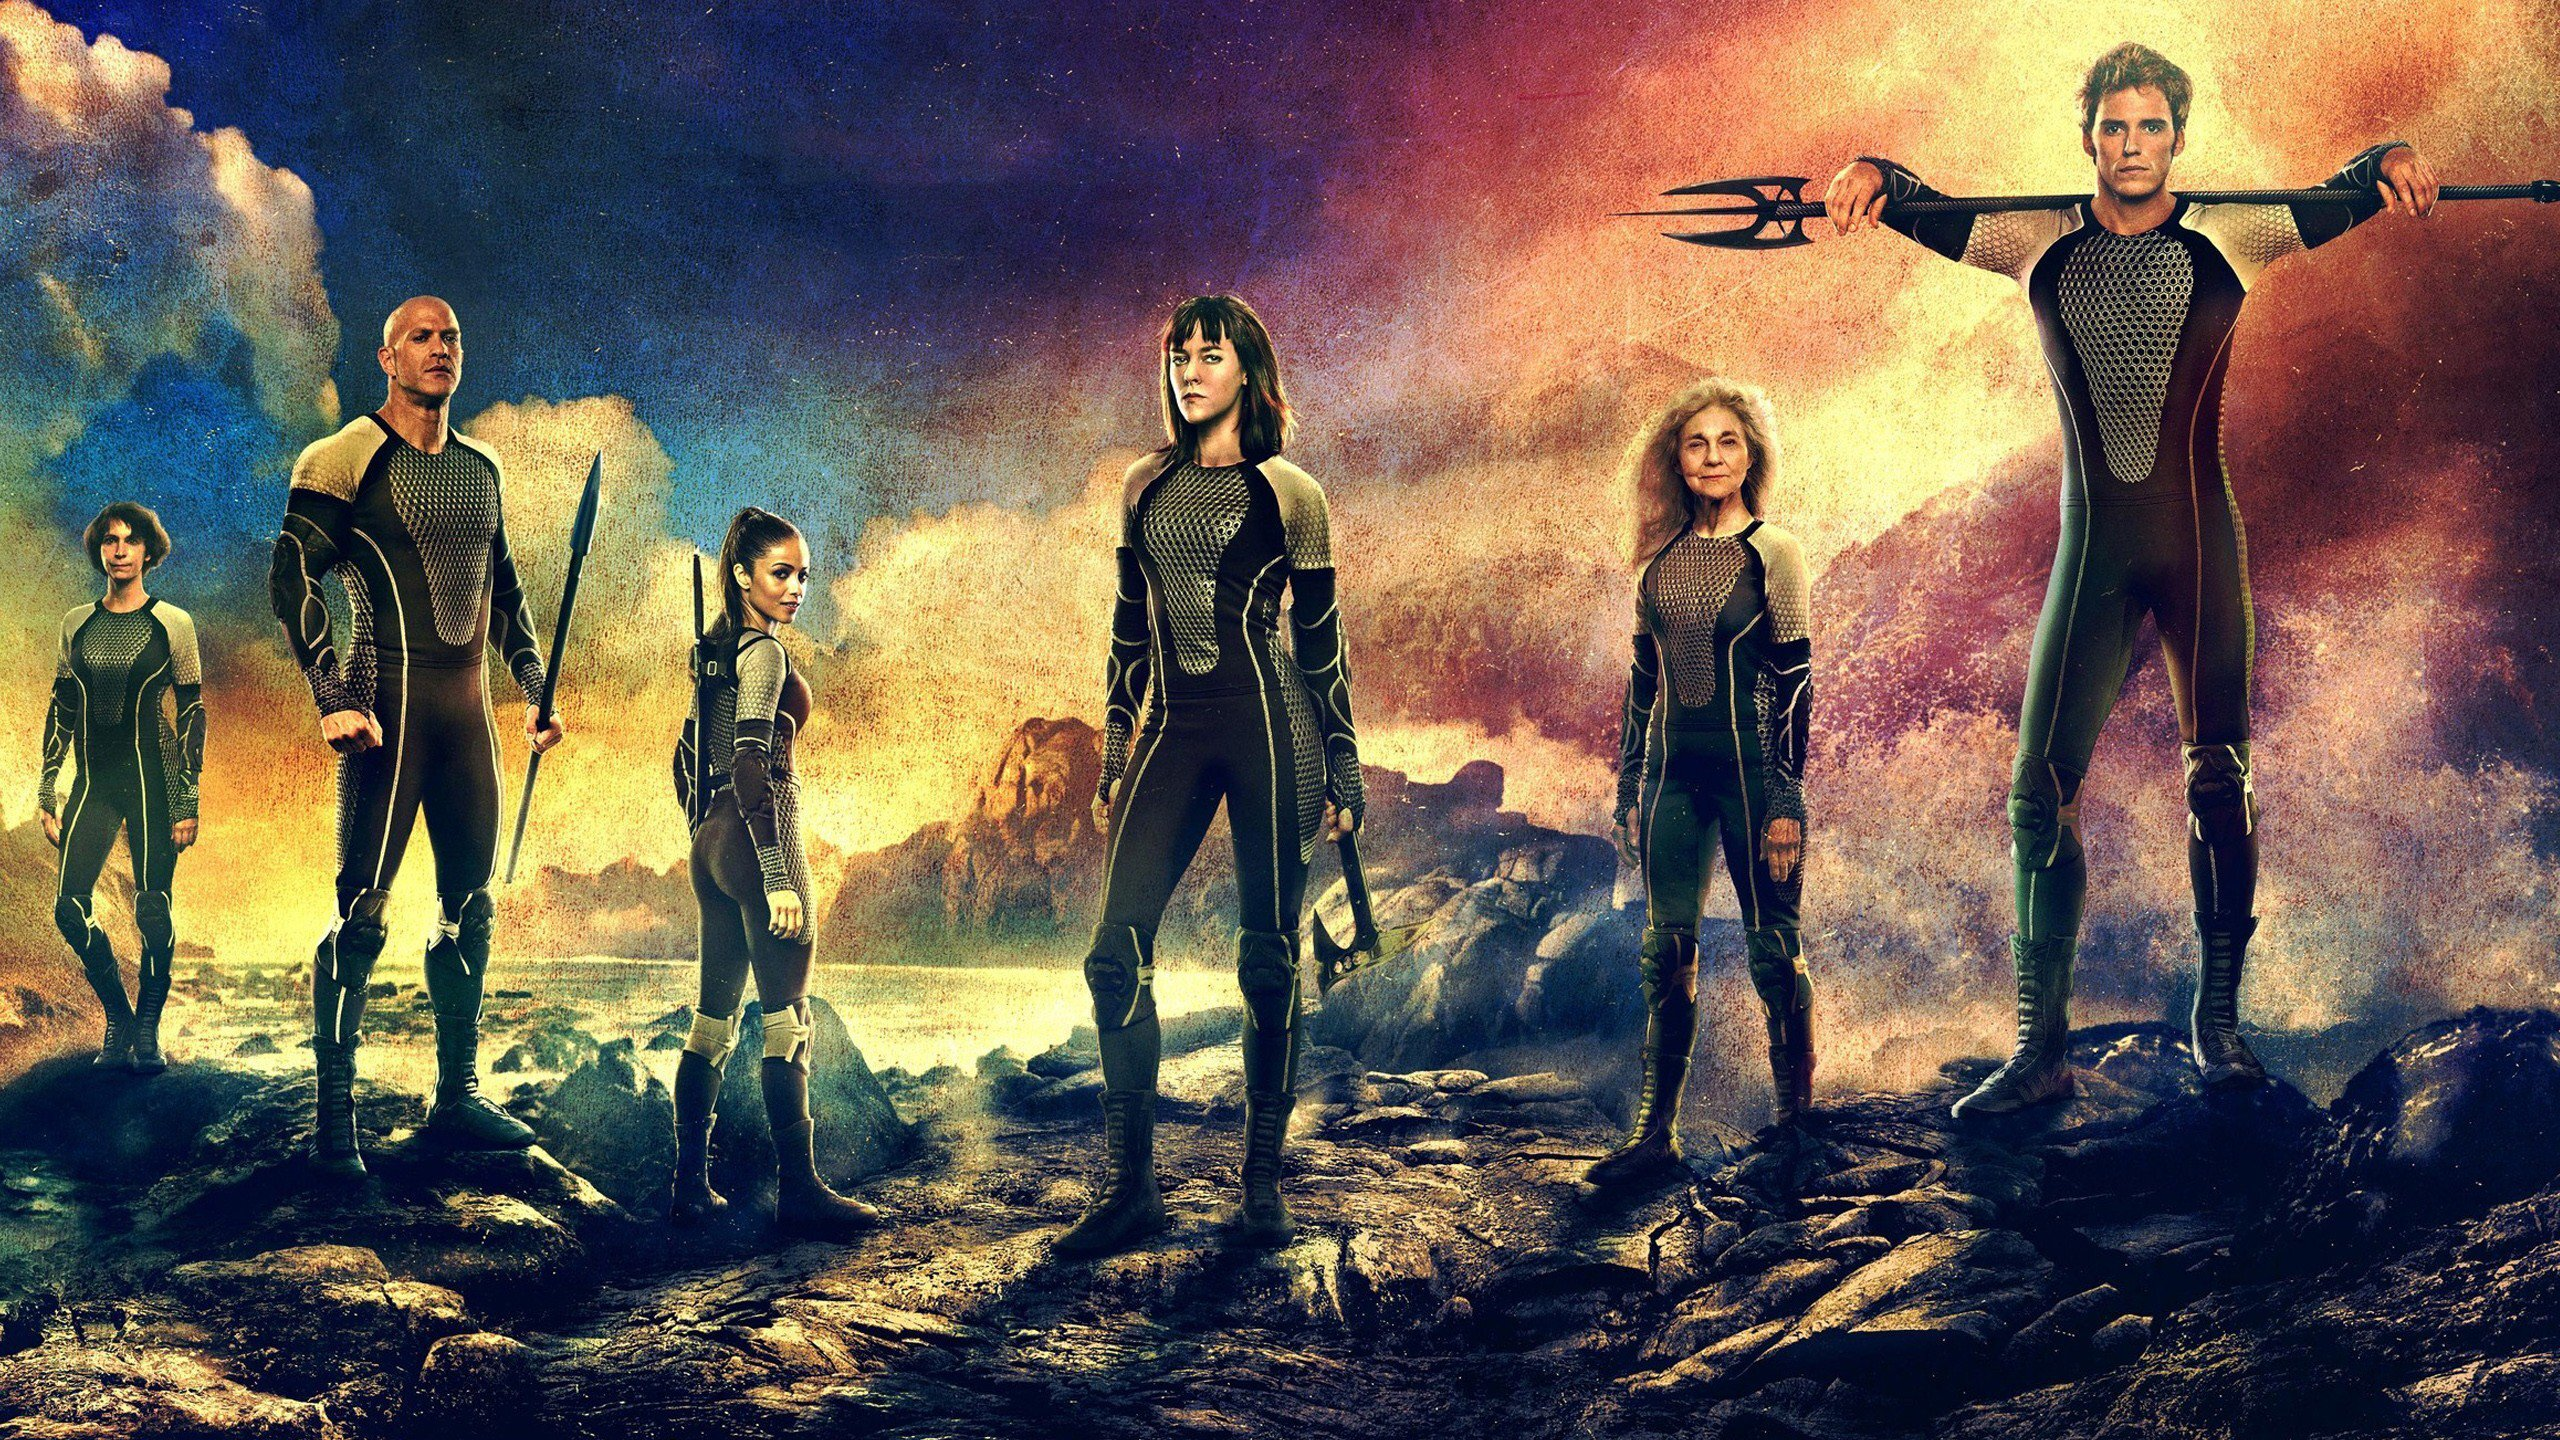 2560x1440 the hunger games catching fire movie 1440p resolution hd